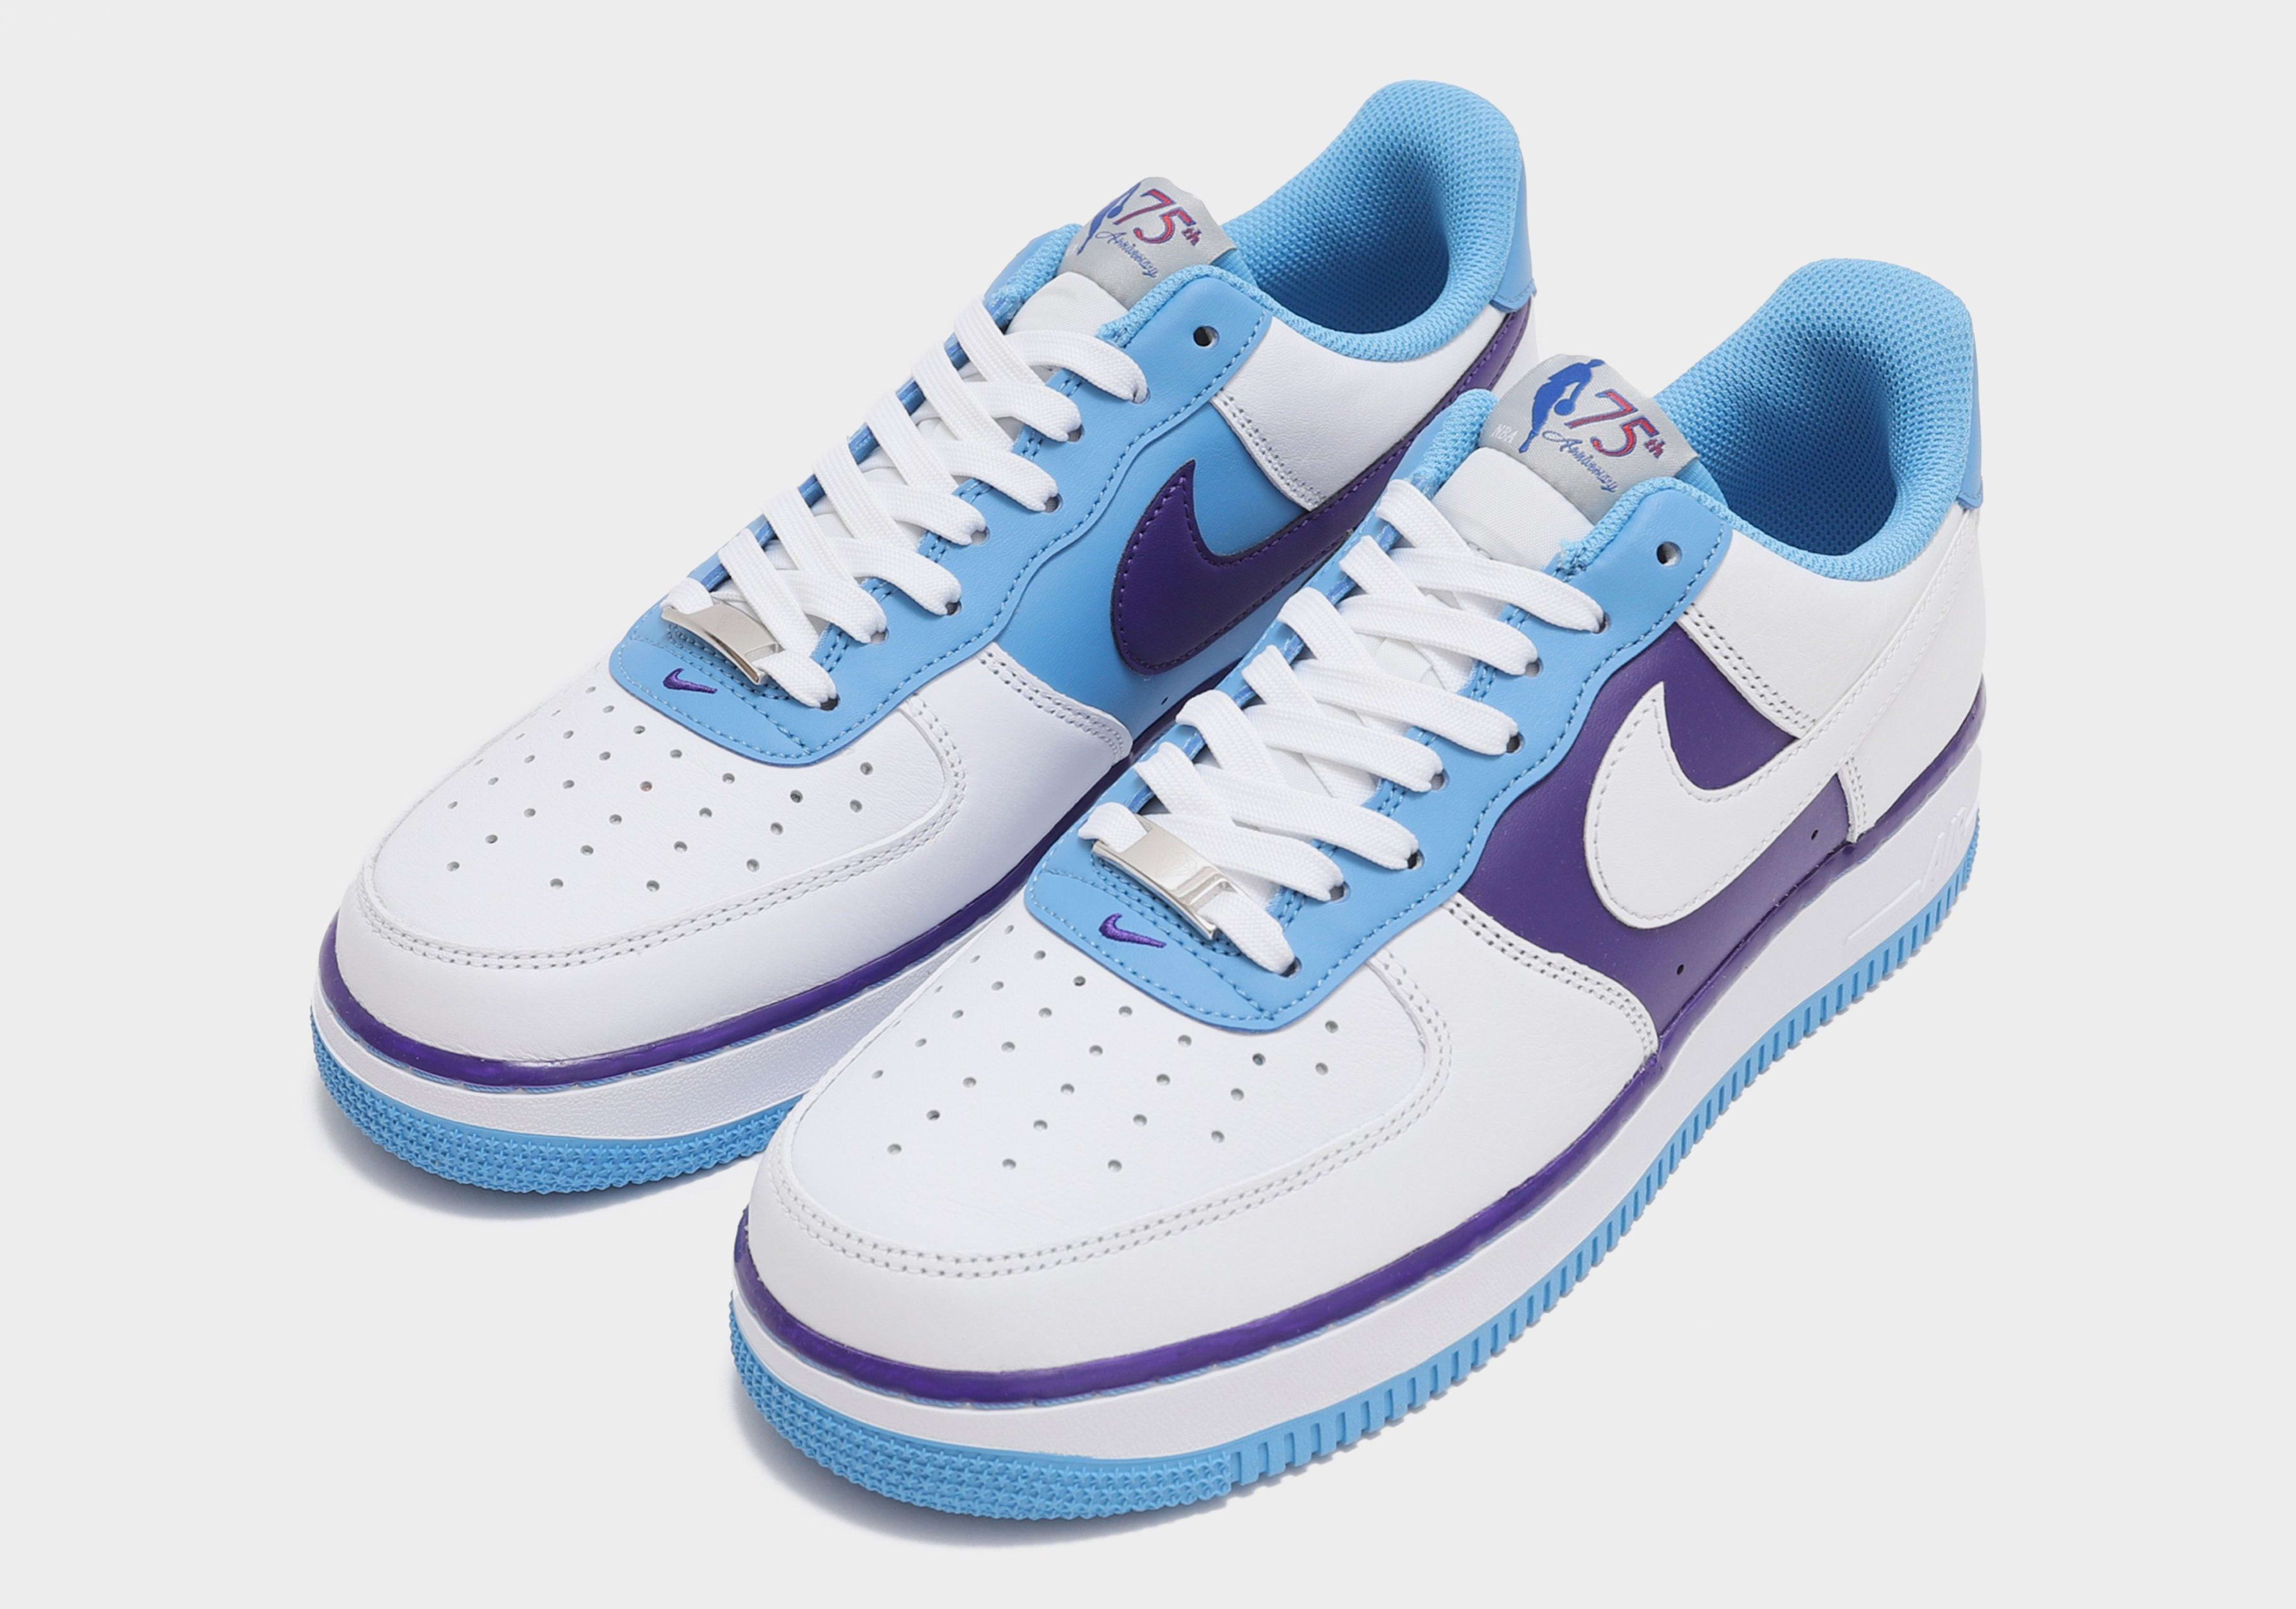 Nike Air Force 1 Low Lakers MPLS Release Date Front